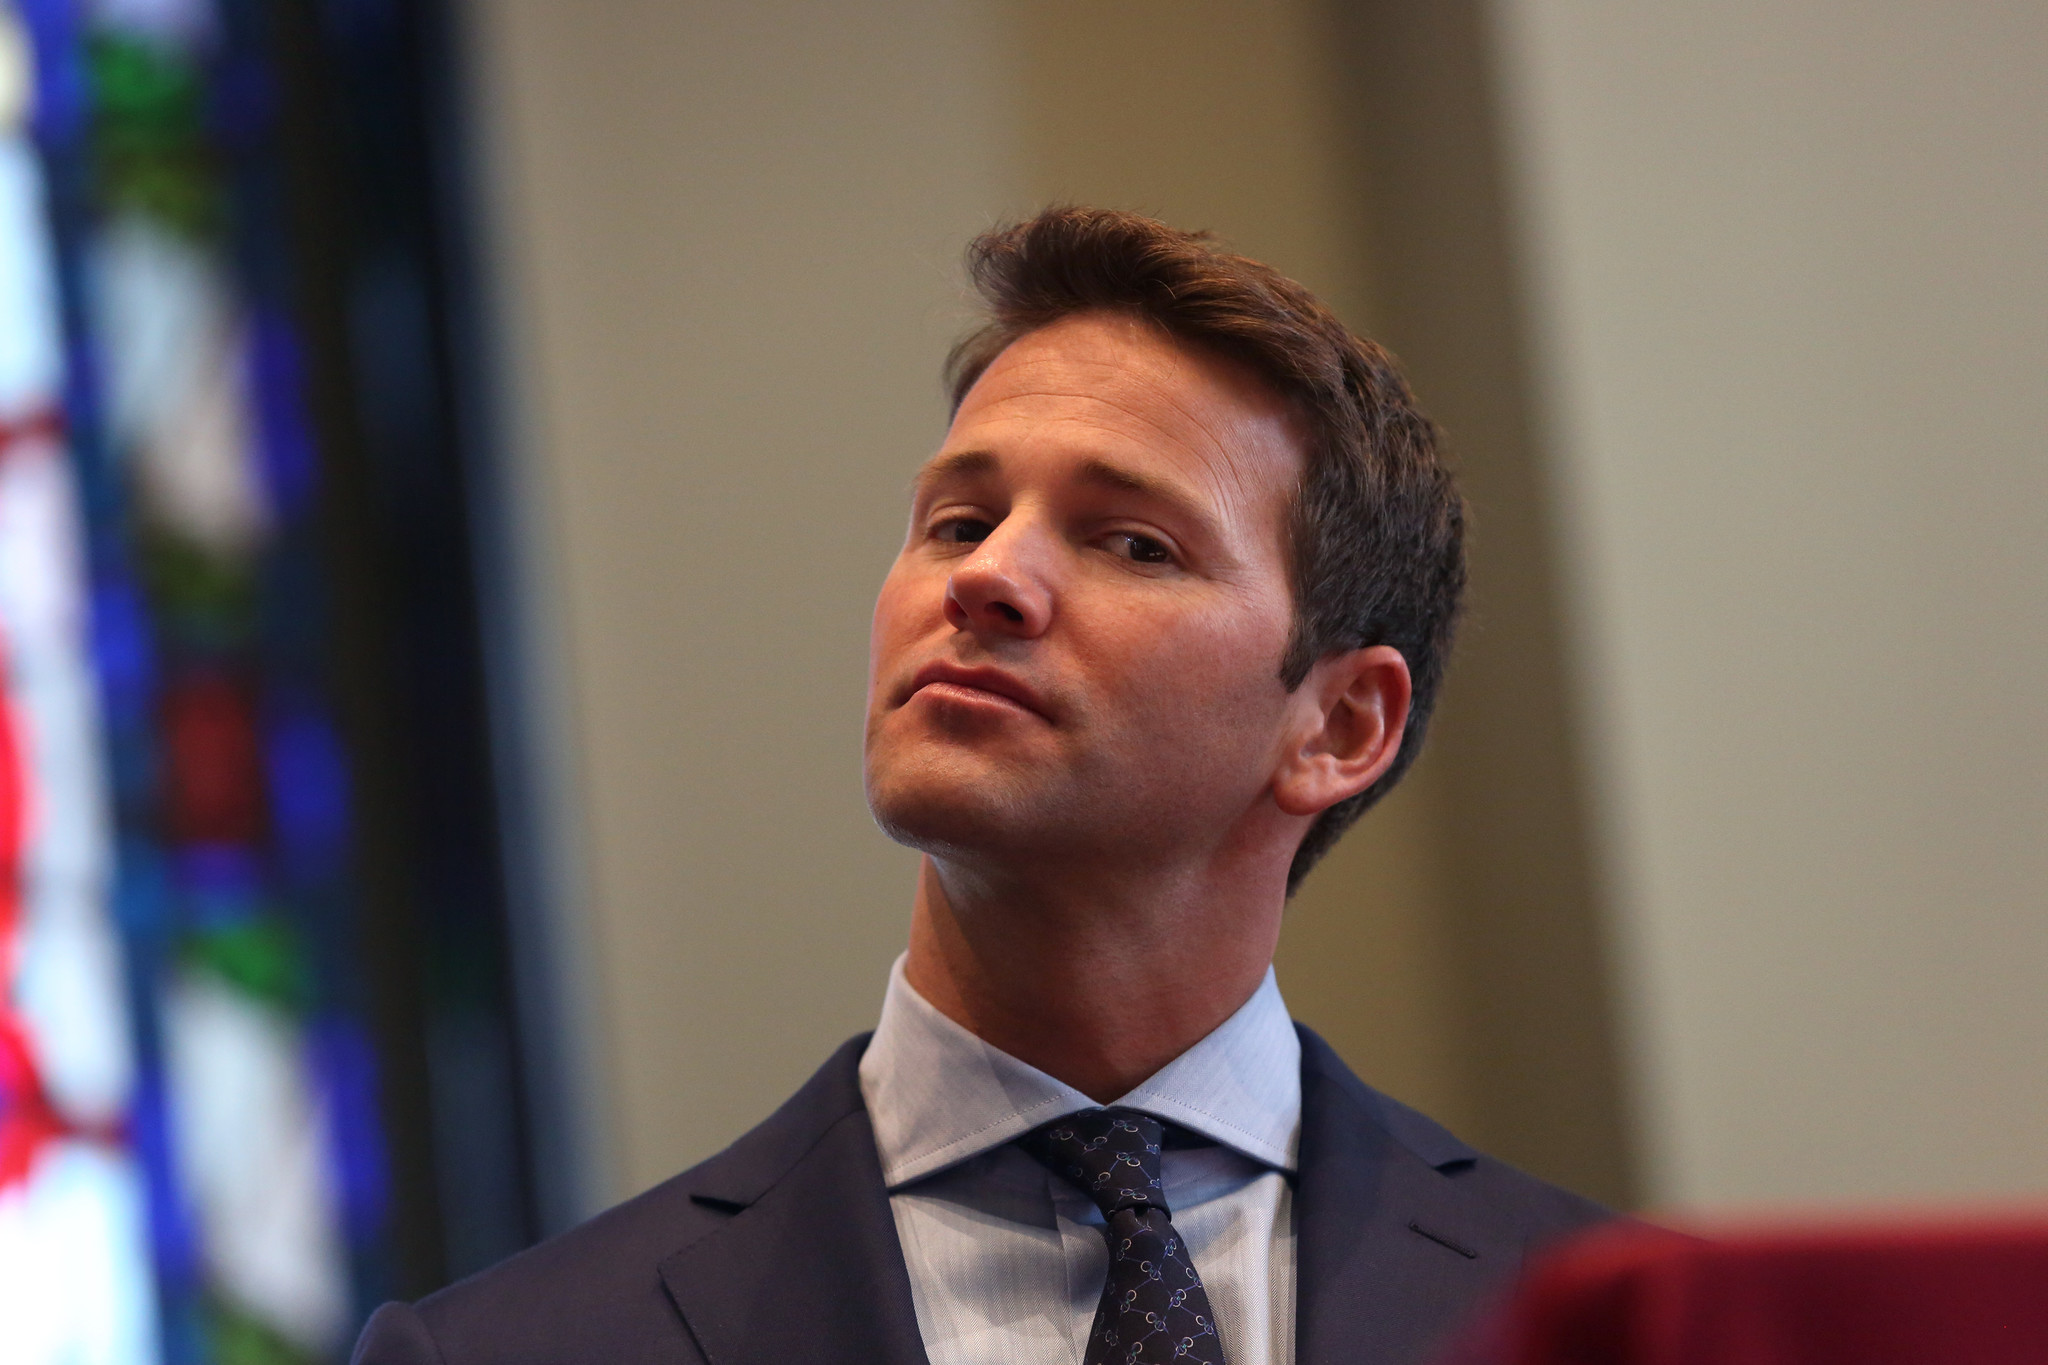 with prosecution on shaky ground schock s lawyers argue vague rules